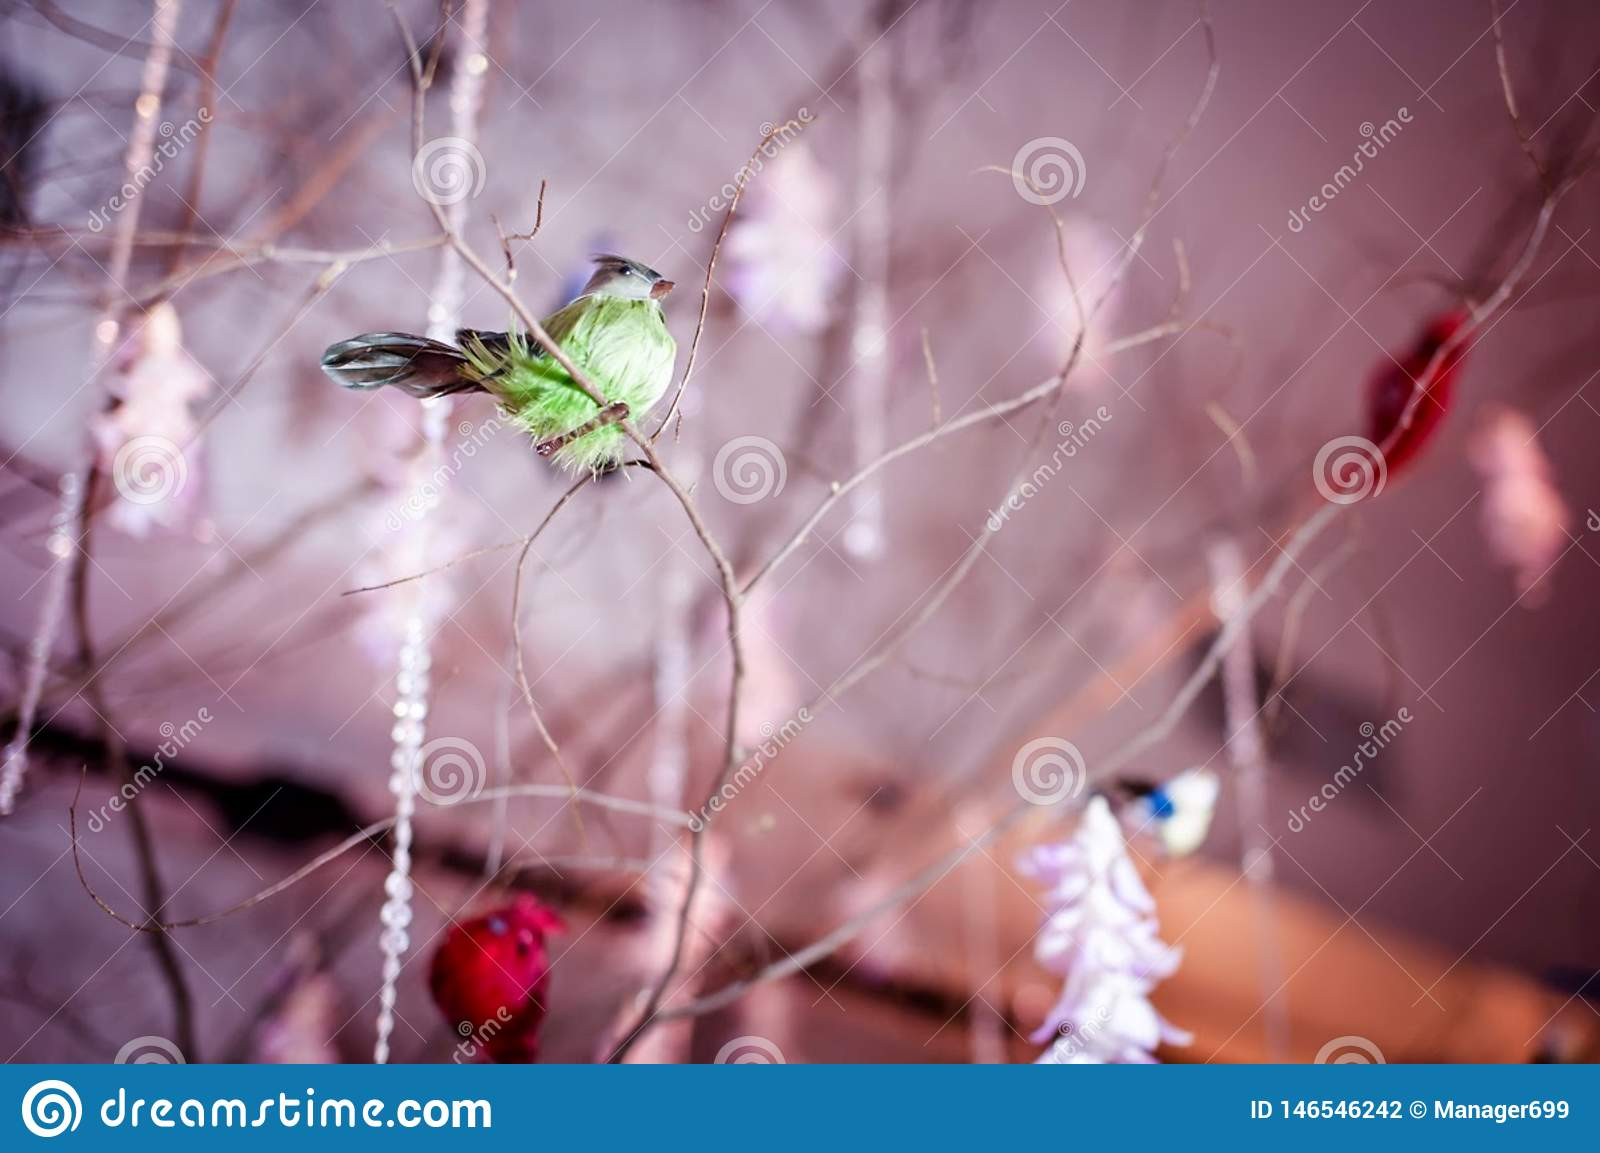 Creative Wedding Venue Decorations with Birds Siting On The Tree.